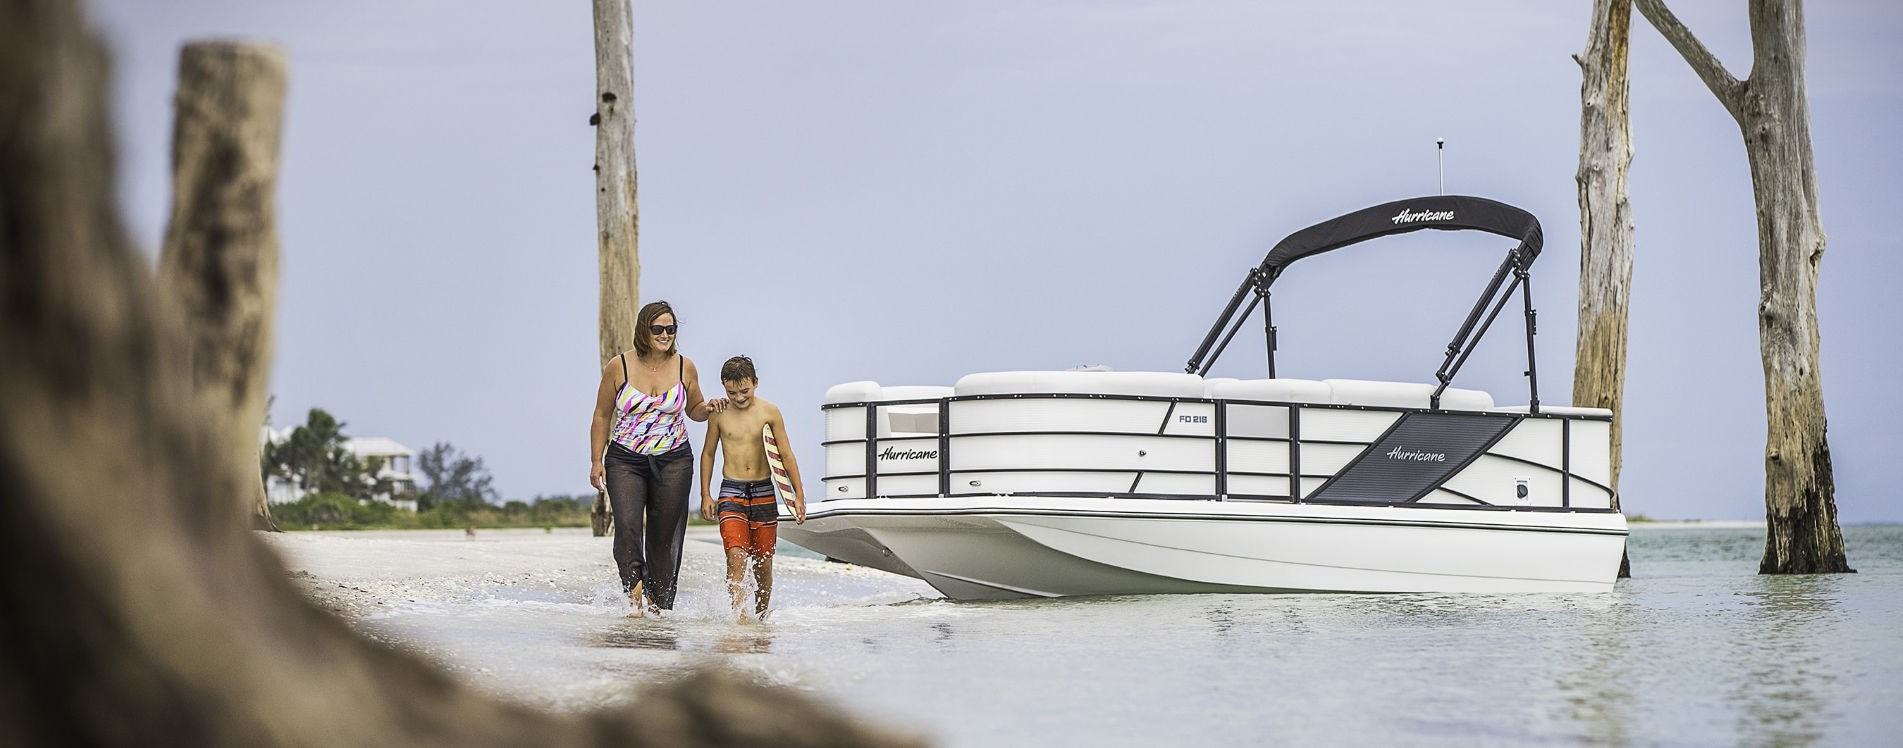 hurricane deck boats pontoons for sale | Johnson Marine